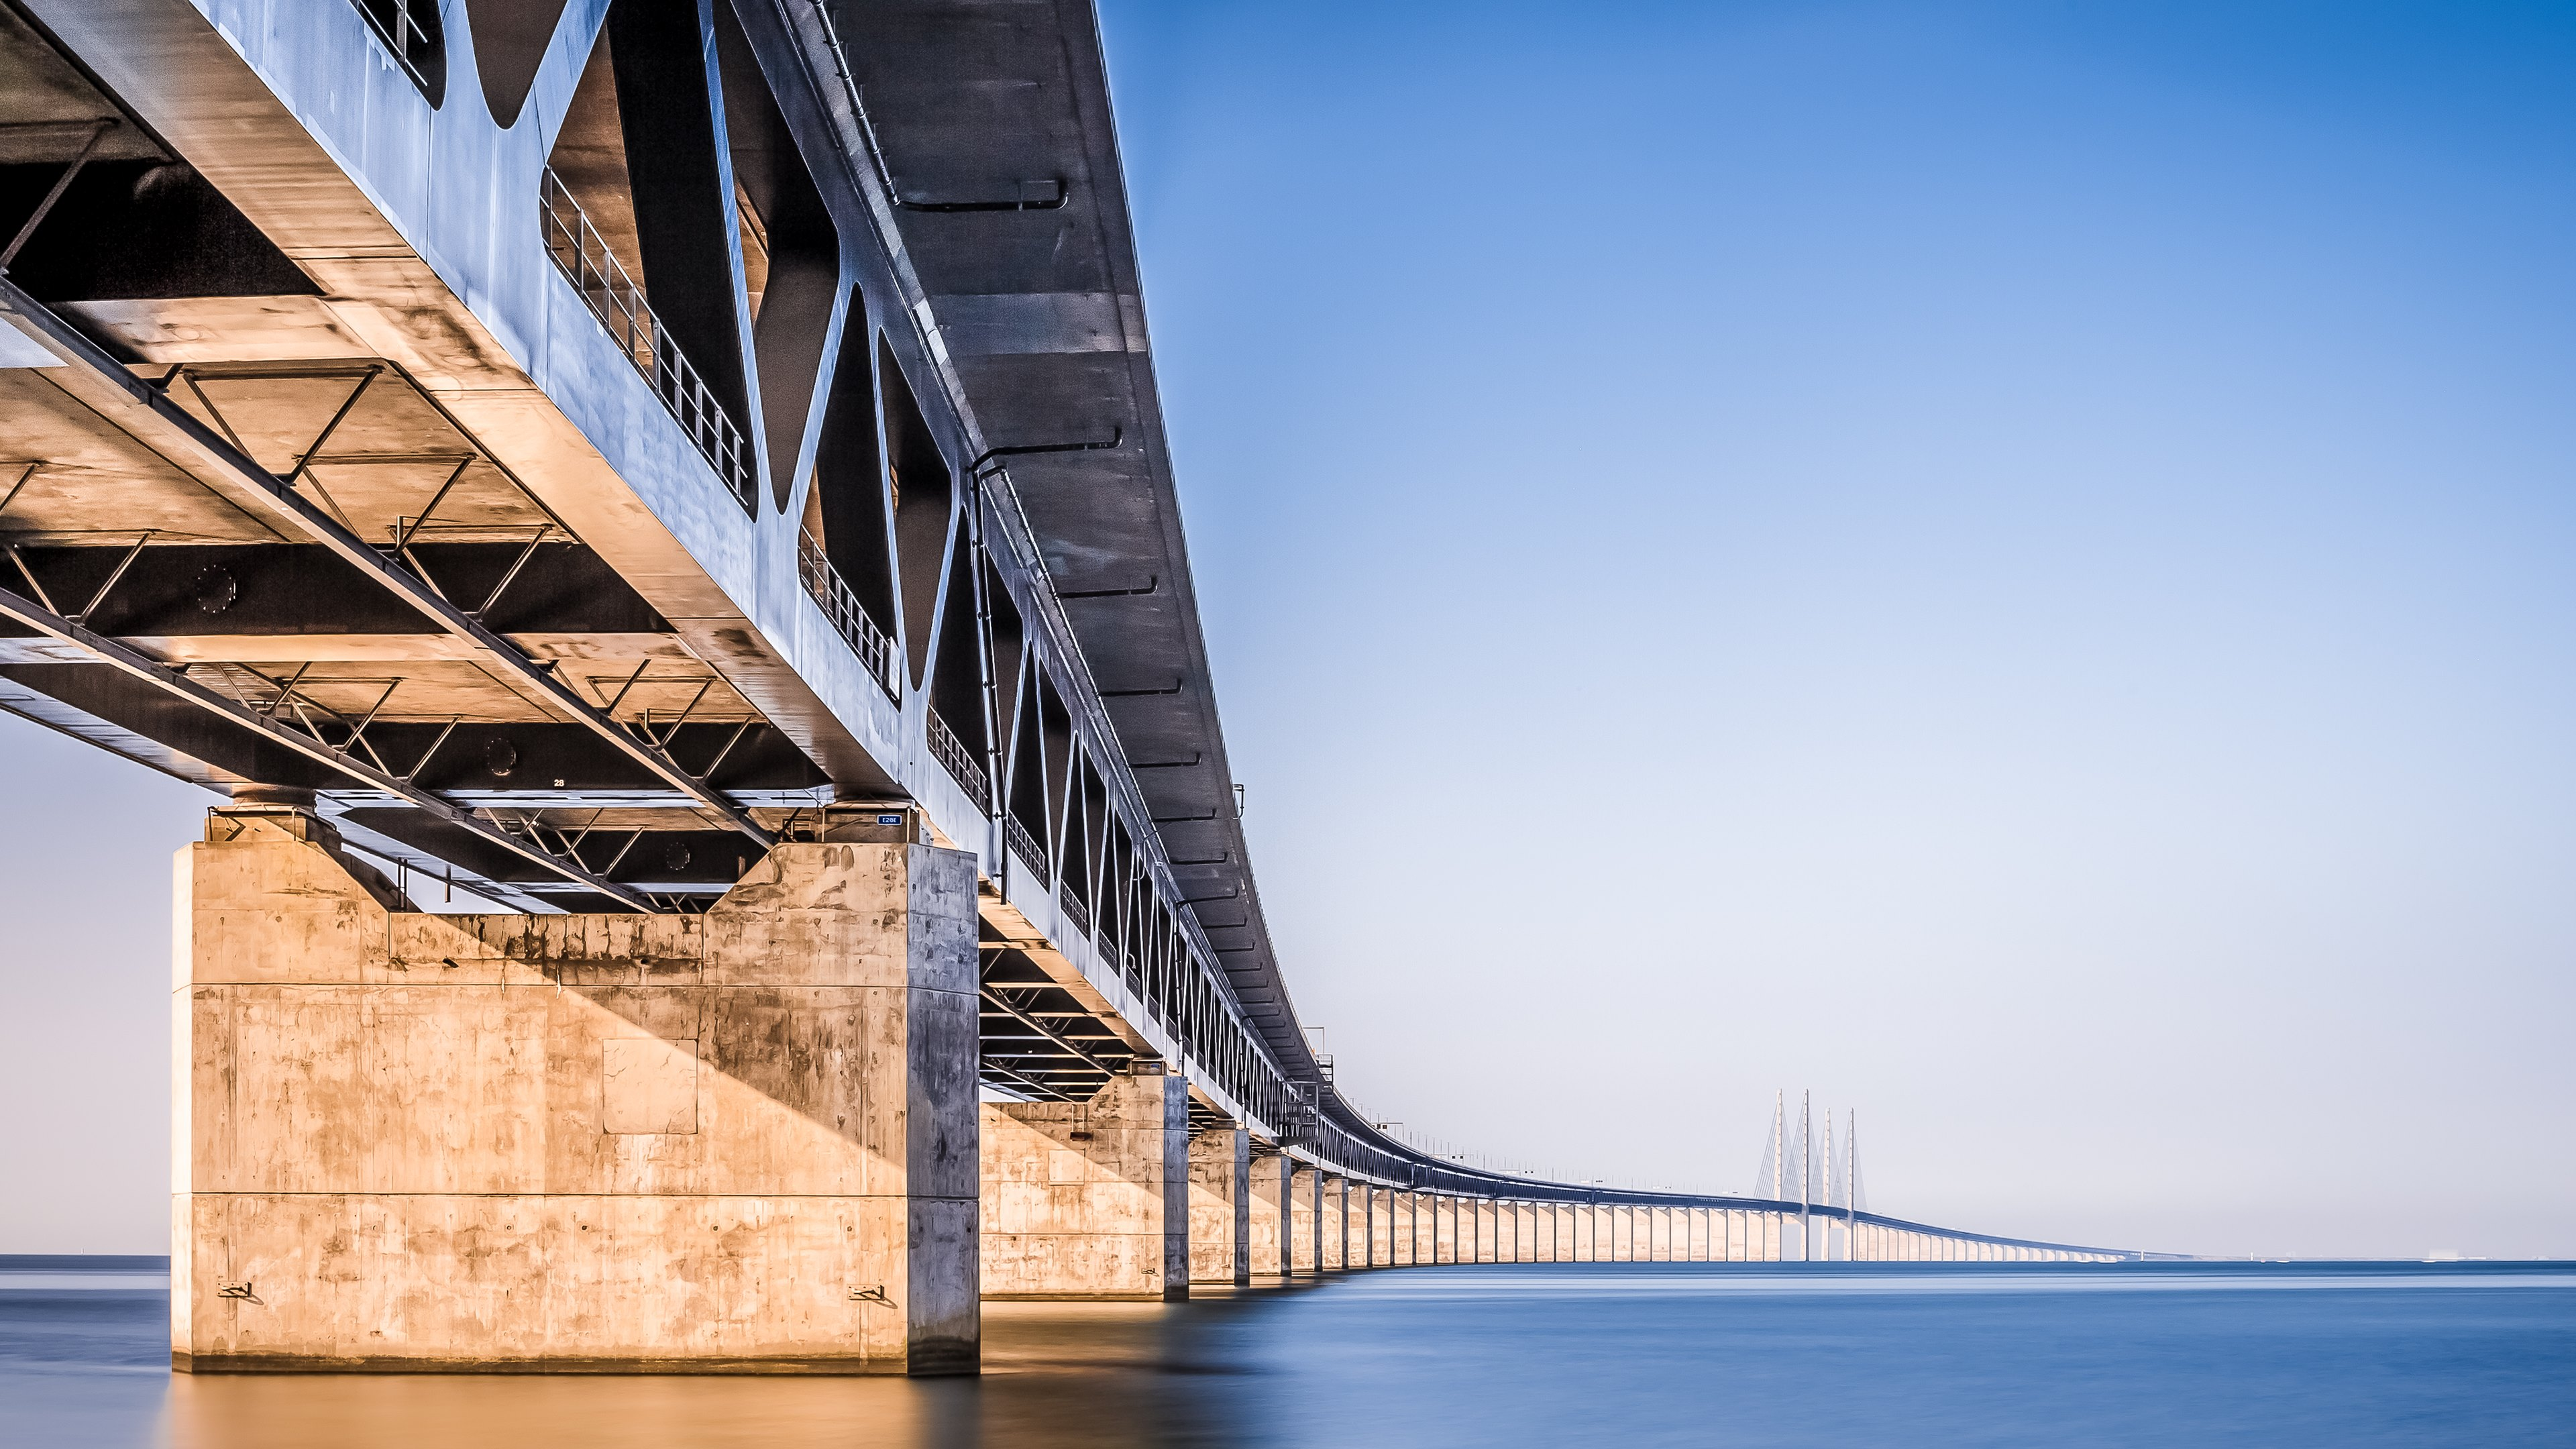 Oresund bridge hd wallpapers 4k macbook and desktop for Architecture 4k wallpaper